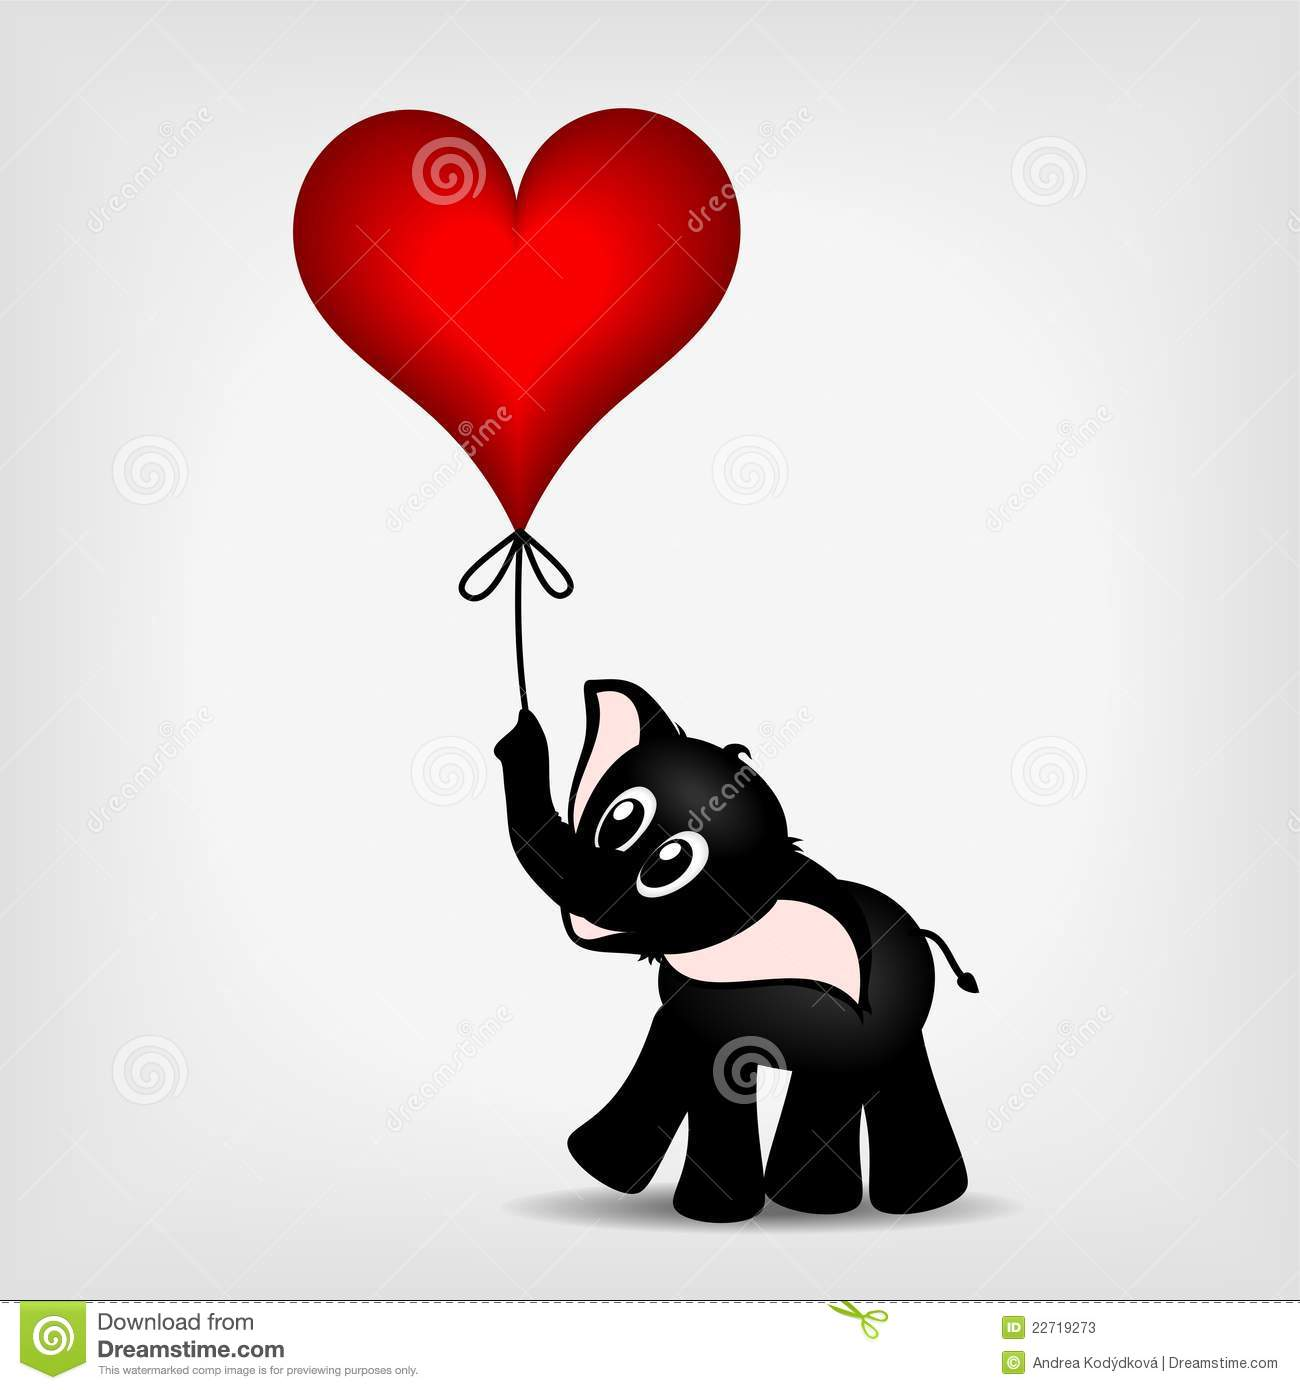 petit l phant noir avec le coeur rouge ballon. Black Bedroom Furniture Sets. Home Design Ideas